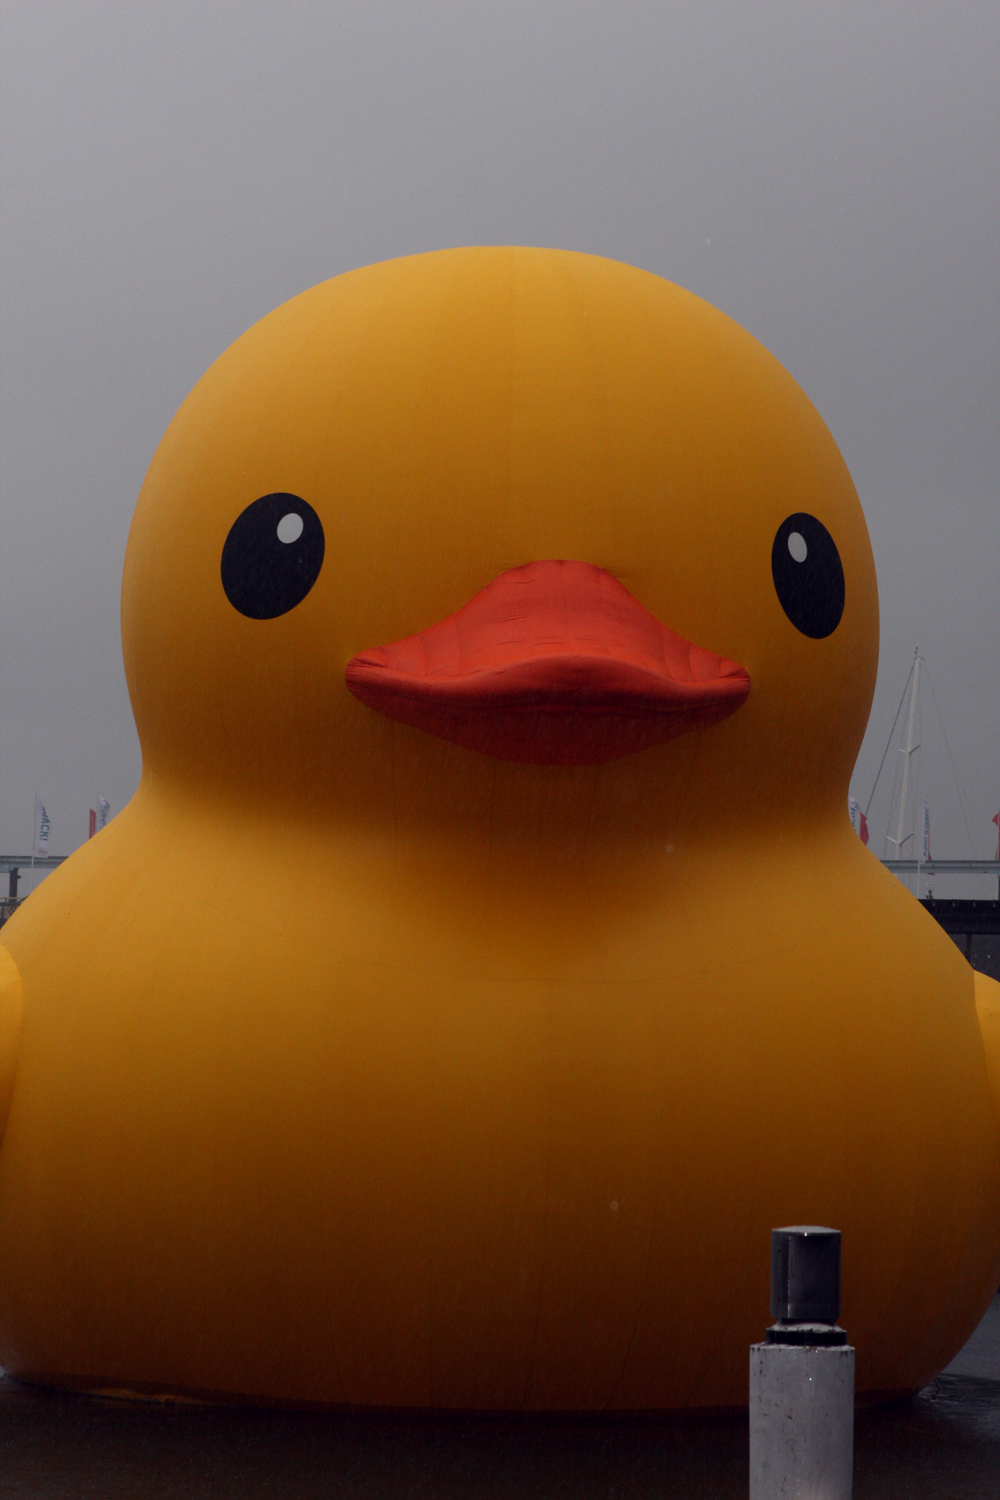 File:Rubber Duck (8374801497).jpg - Wikimedia Commons